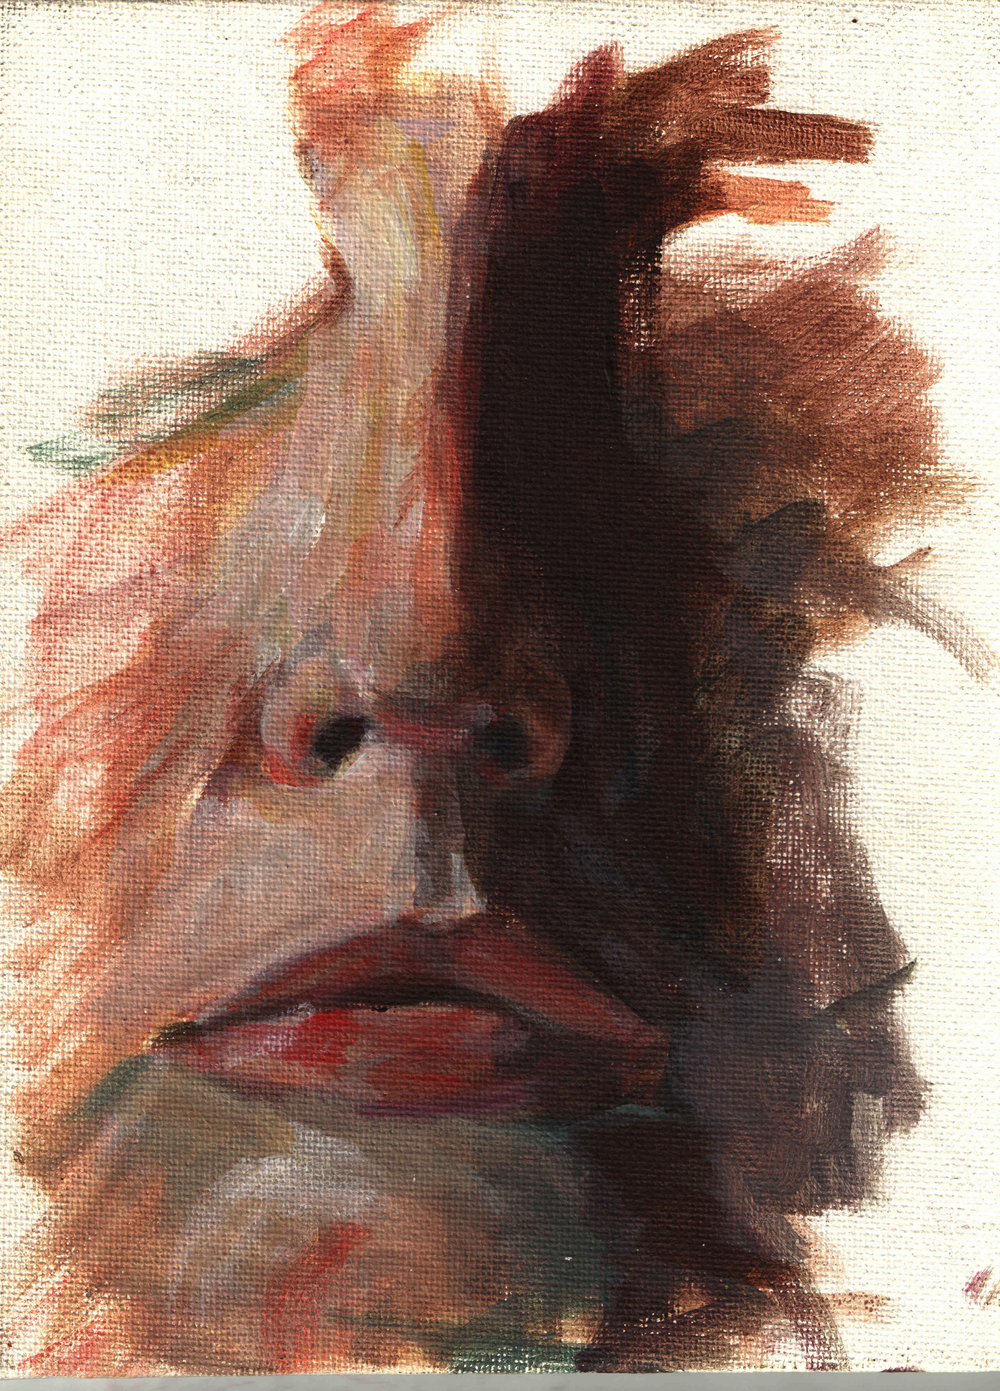 Self Portrait Abstract  Oil paint on canvas board 6x8""